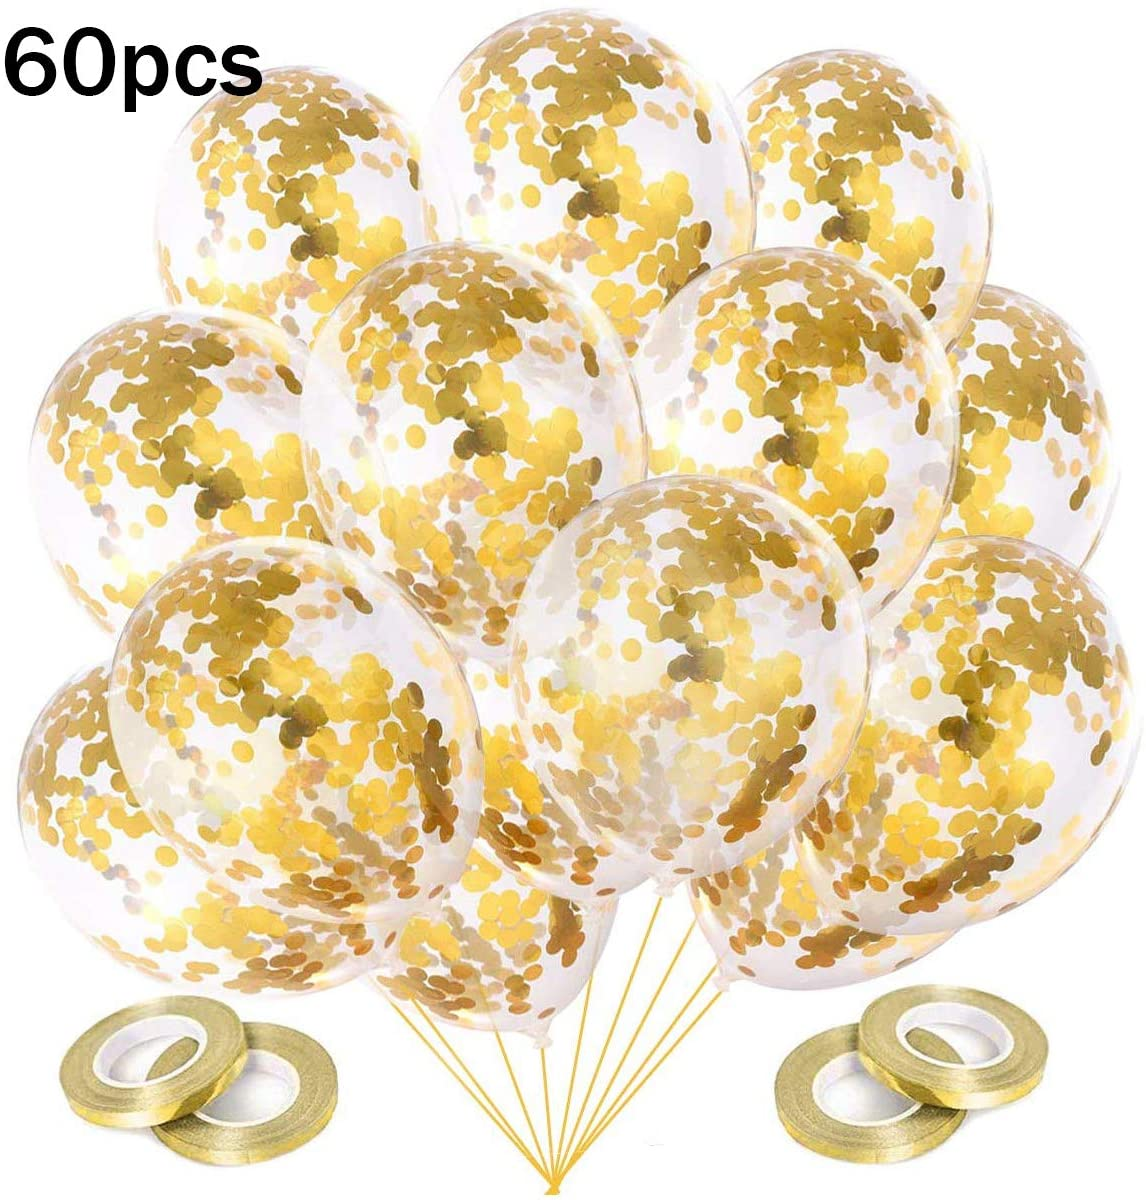 LAKIND 60pcs Gold Confetti Balloons,12 Inch Latex Party Balloons with Gold Glitter Balloons for Party Decorations, Wedding Engagement Baby Shower (Gold)